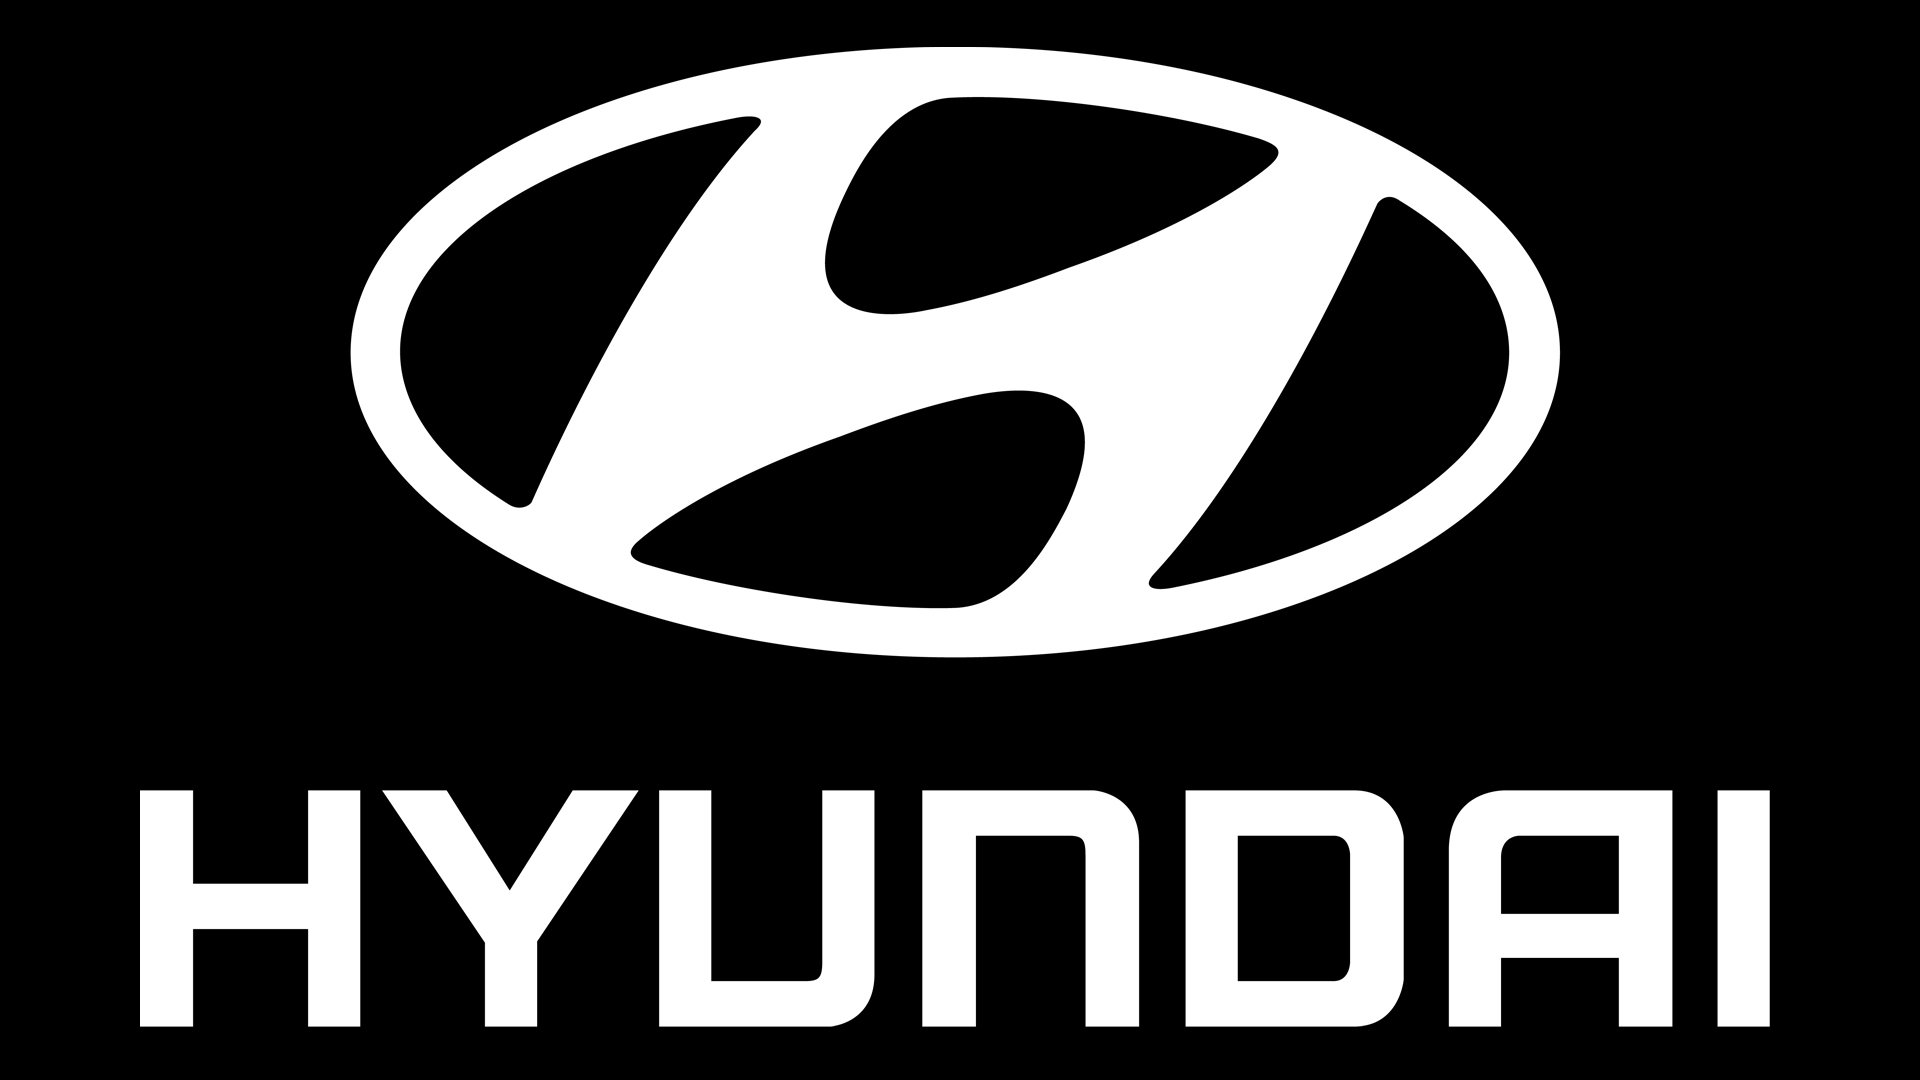 Hyundai logo: about meaning, history and new changes in ...